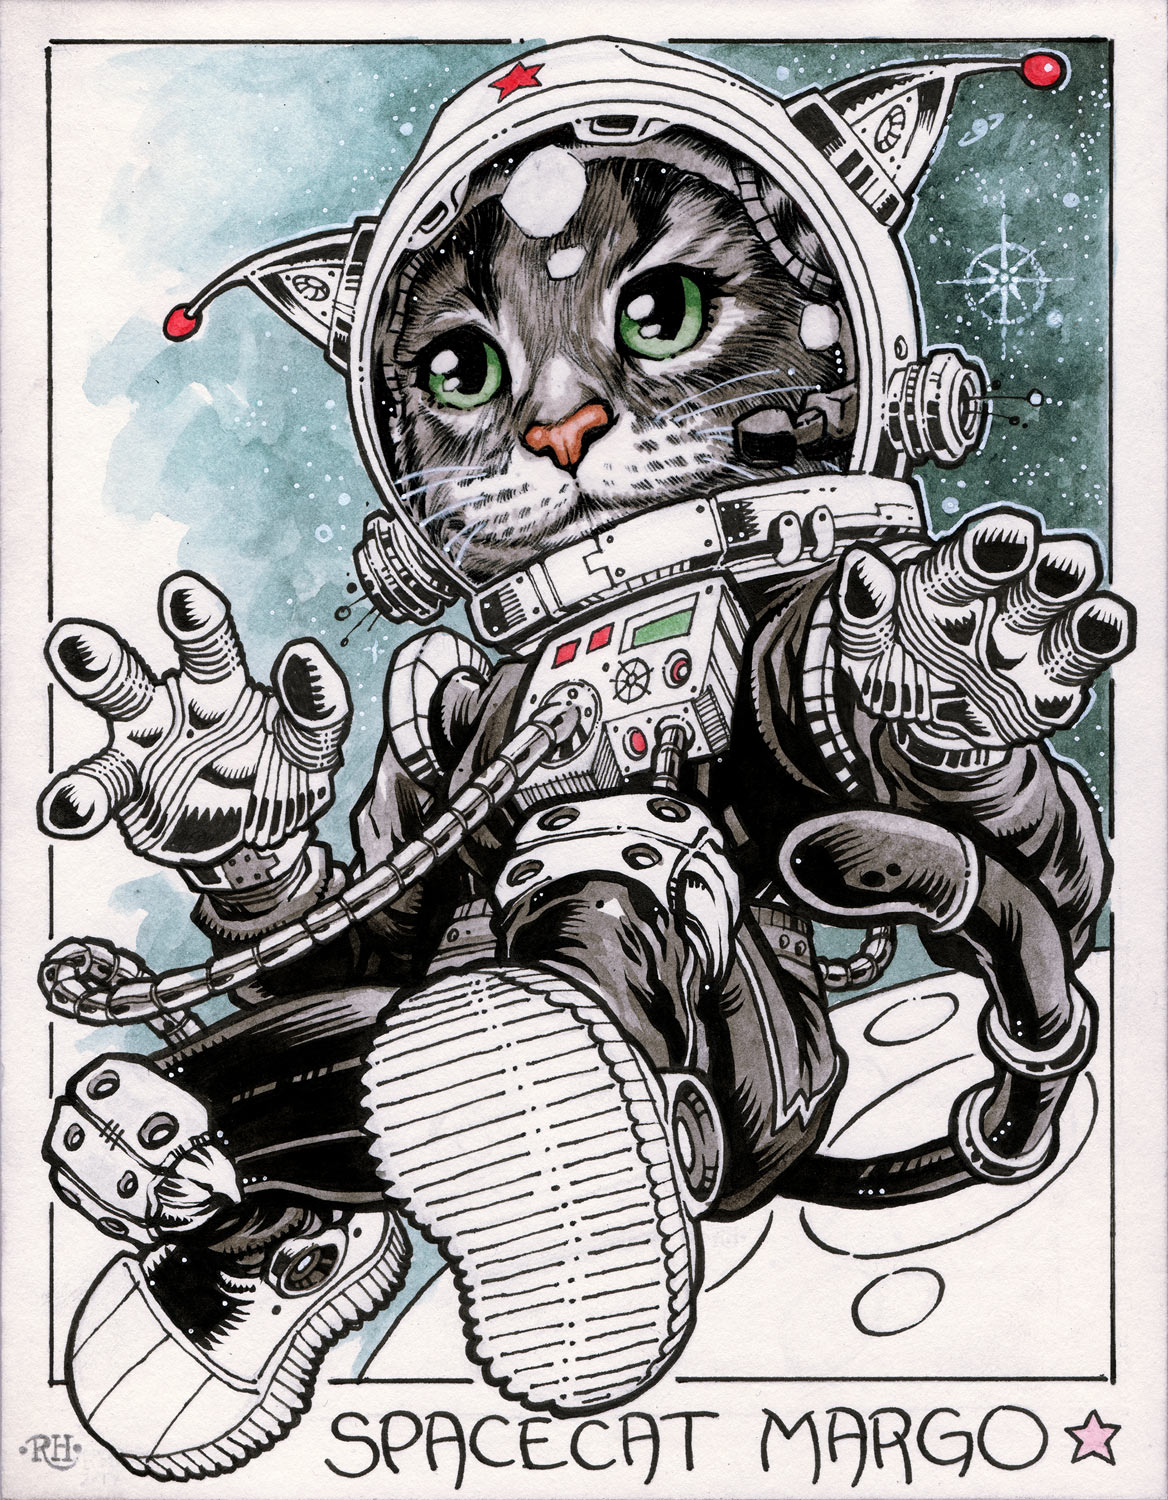 Spacecat Margo